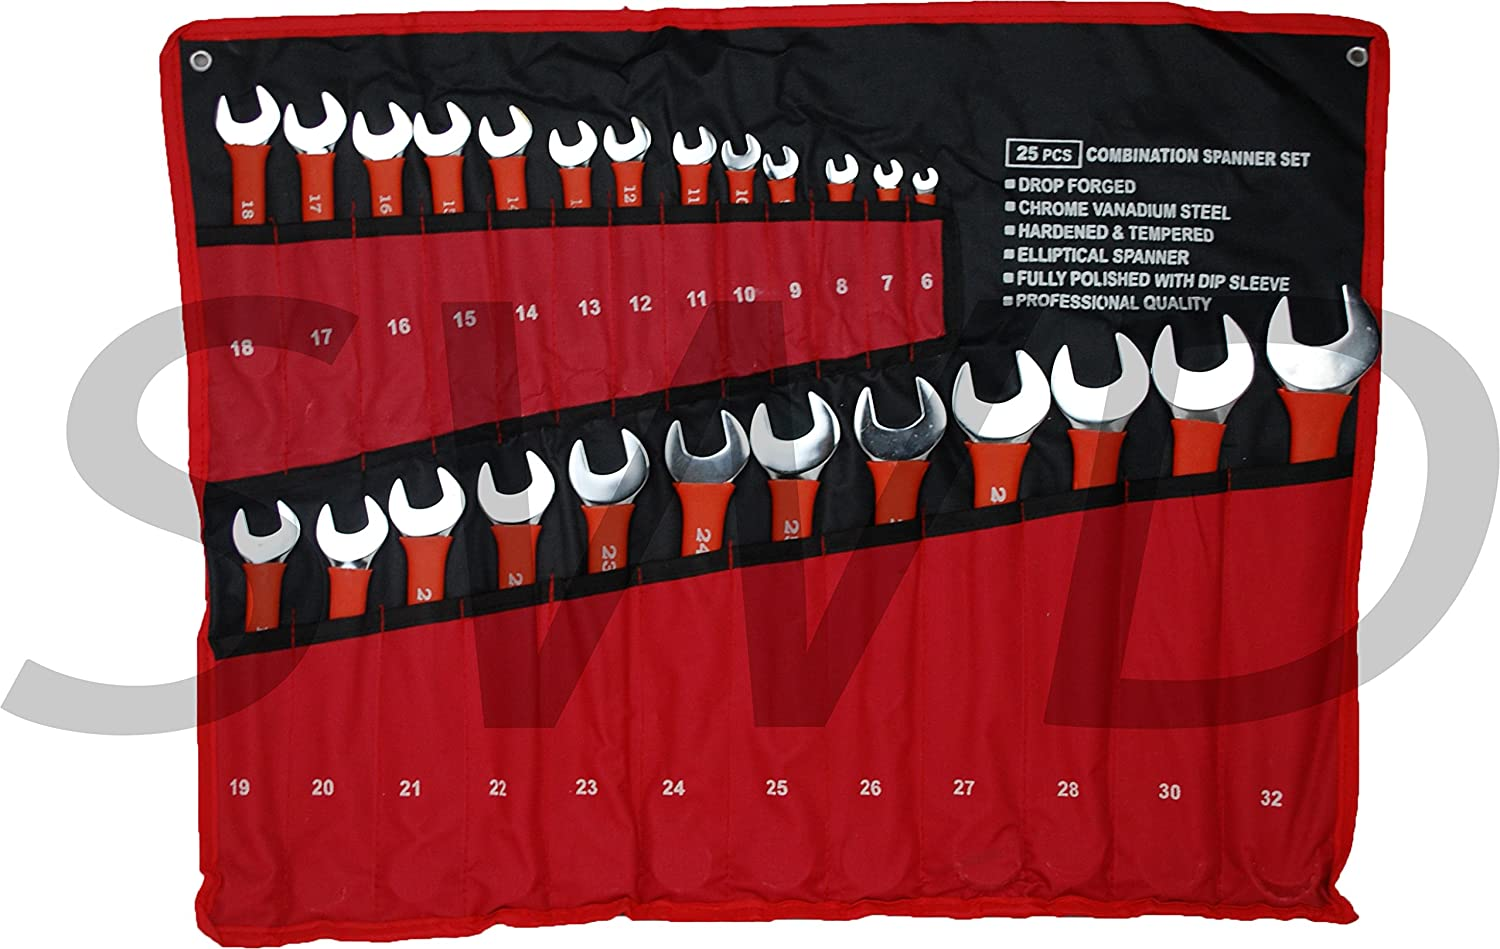 25pc combination spanner set open and ring metric dipped sleeves